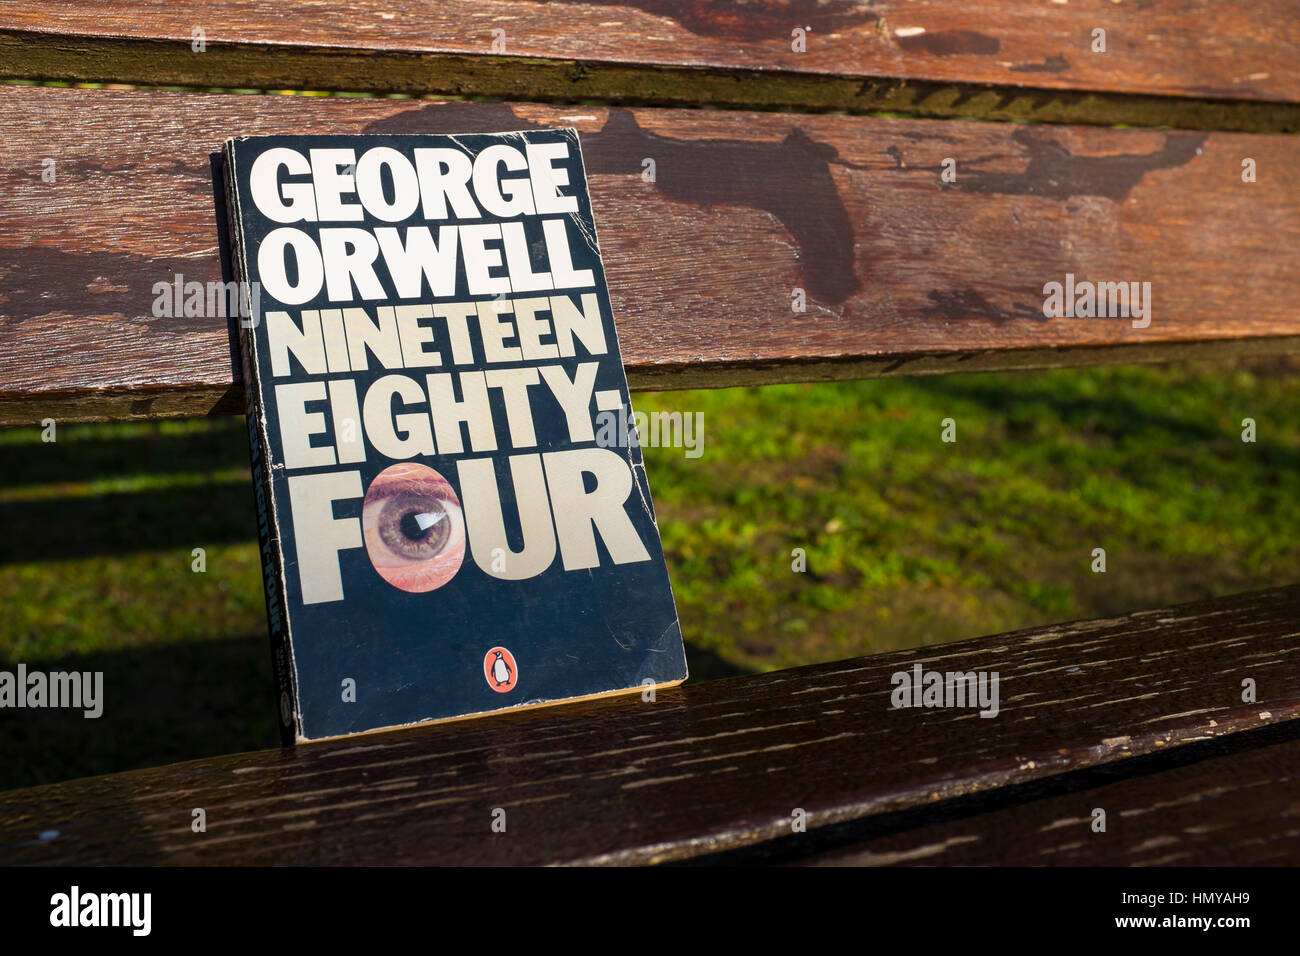 1984 By George Orwell Novel Published In 1949in January 2017